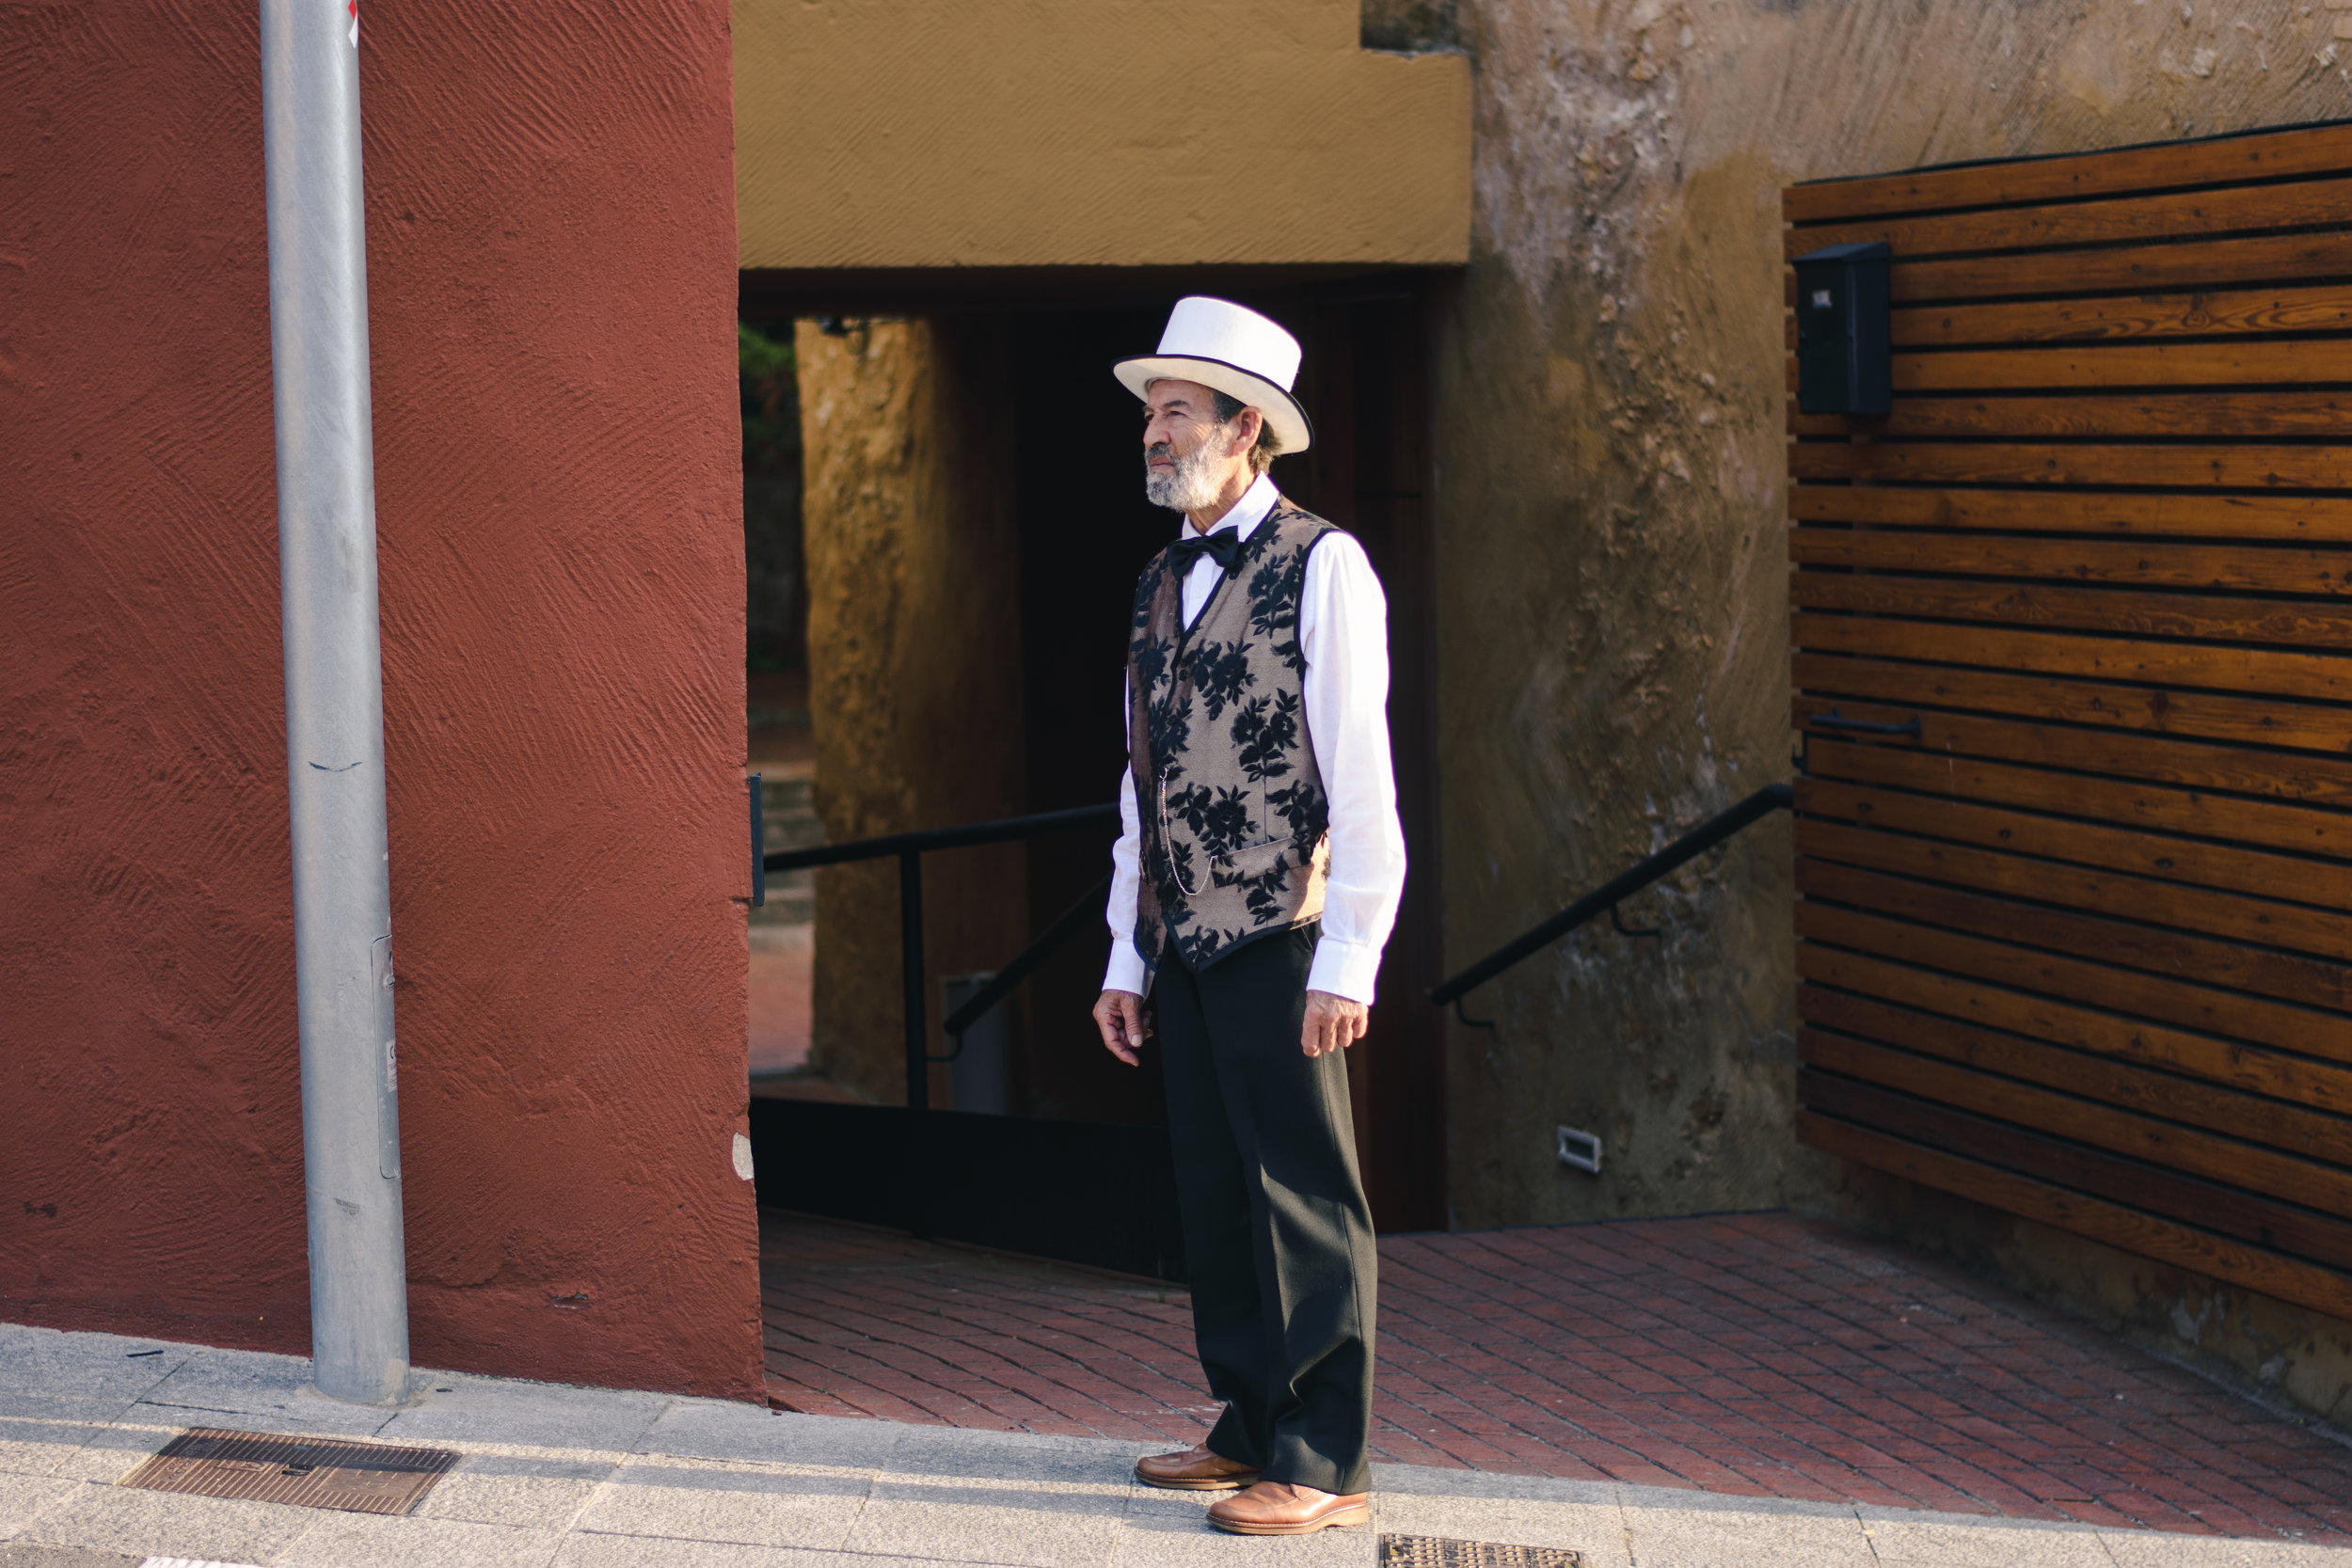 The Man with the Hat  - Begur, September 2018